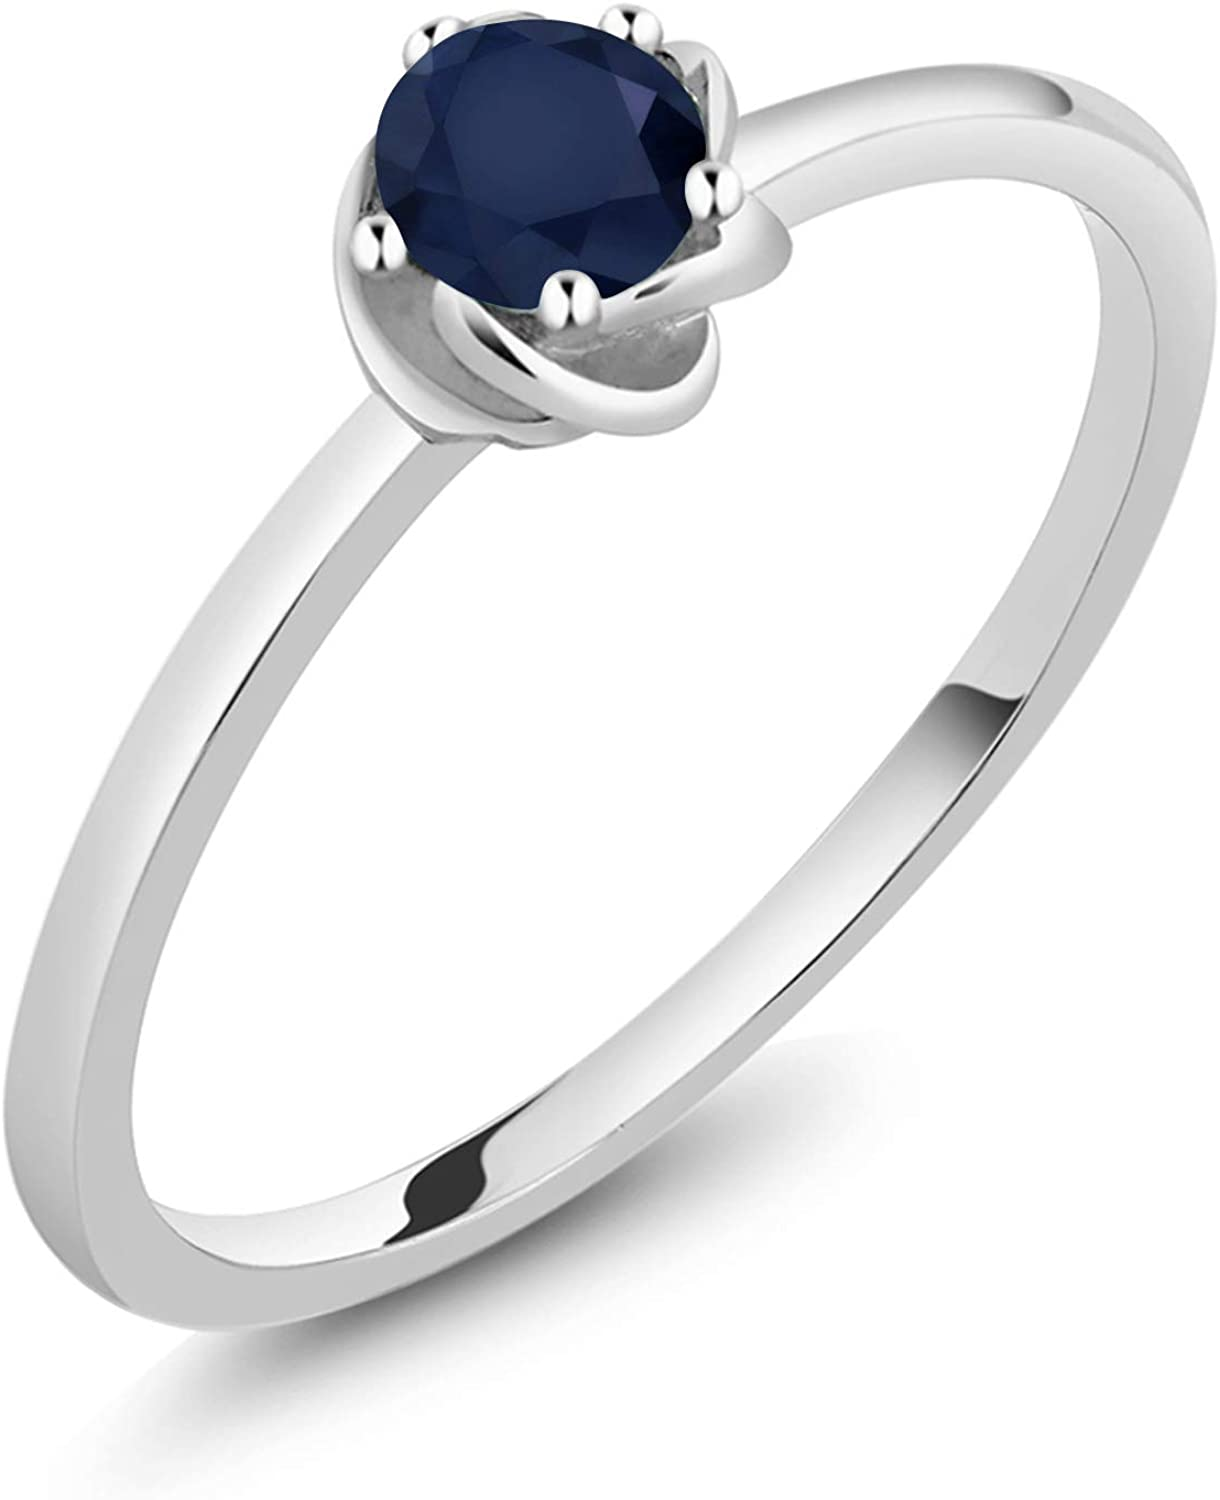 Available 5,6,7,8,9 Gem Stone King Sterling Silver Blue Sapphire Gemstone Birthstone Womens Ring 1.02 cttw